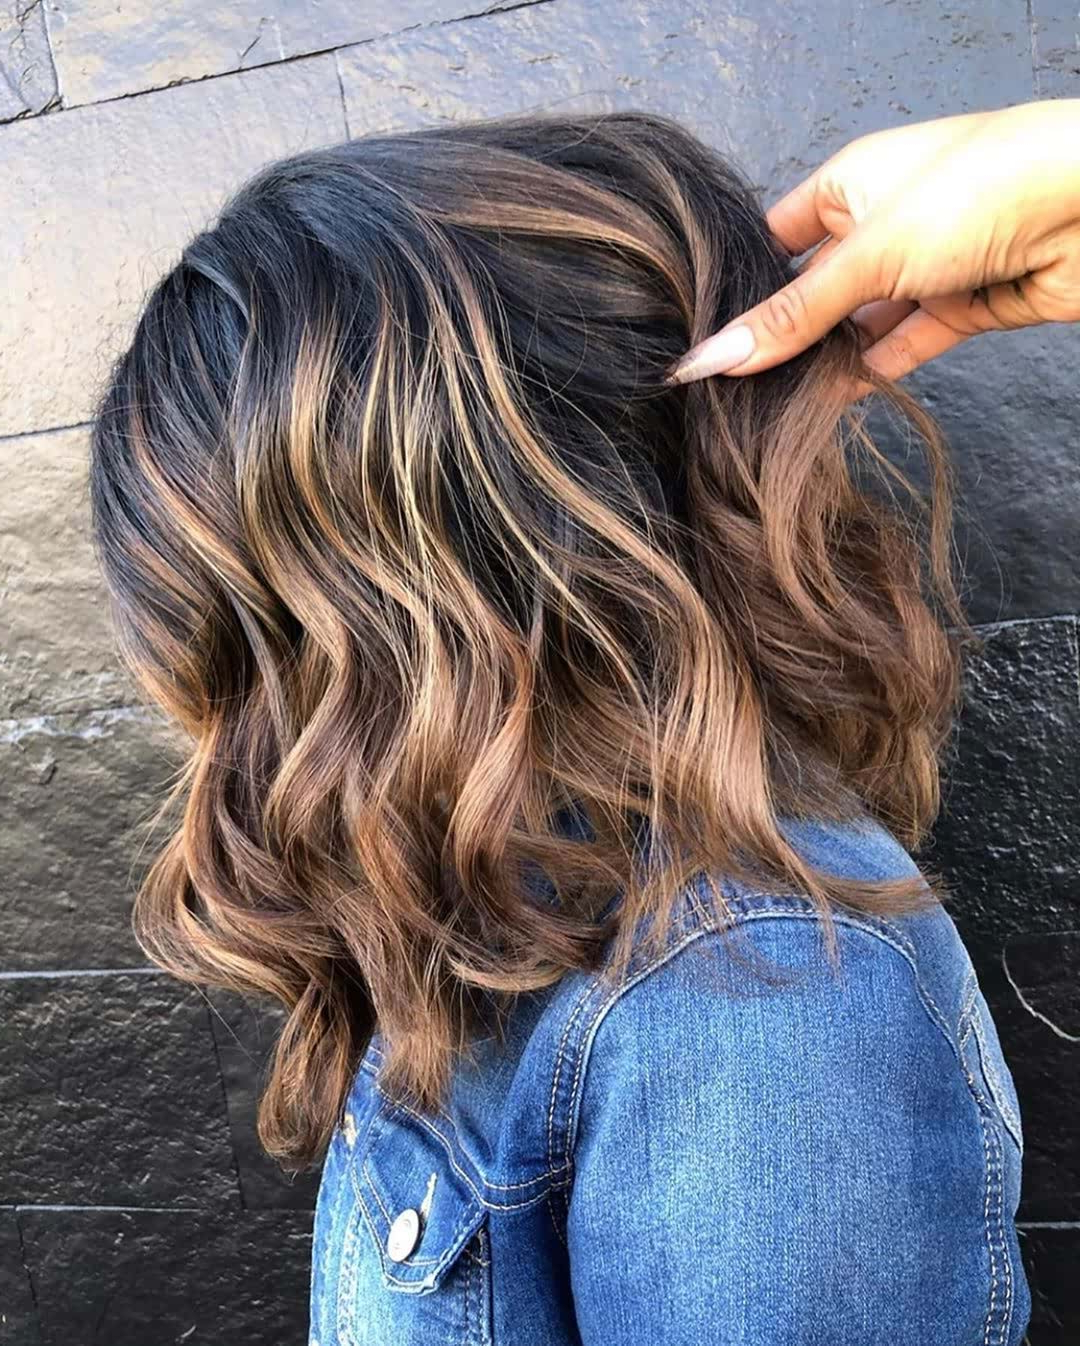 11 Fresh Hair Color Ideas 2020 – Bob Hair Color Trends Intended For Half Bob Half Pixie Hairstyles With Cool Blonde Balayage (View 16 of 20)